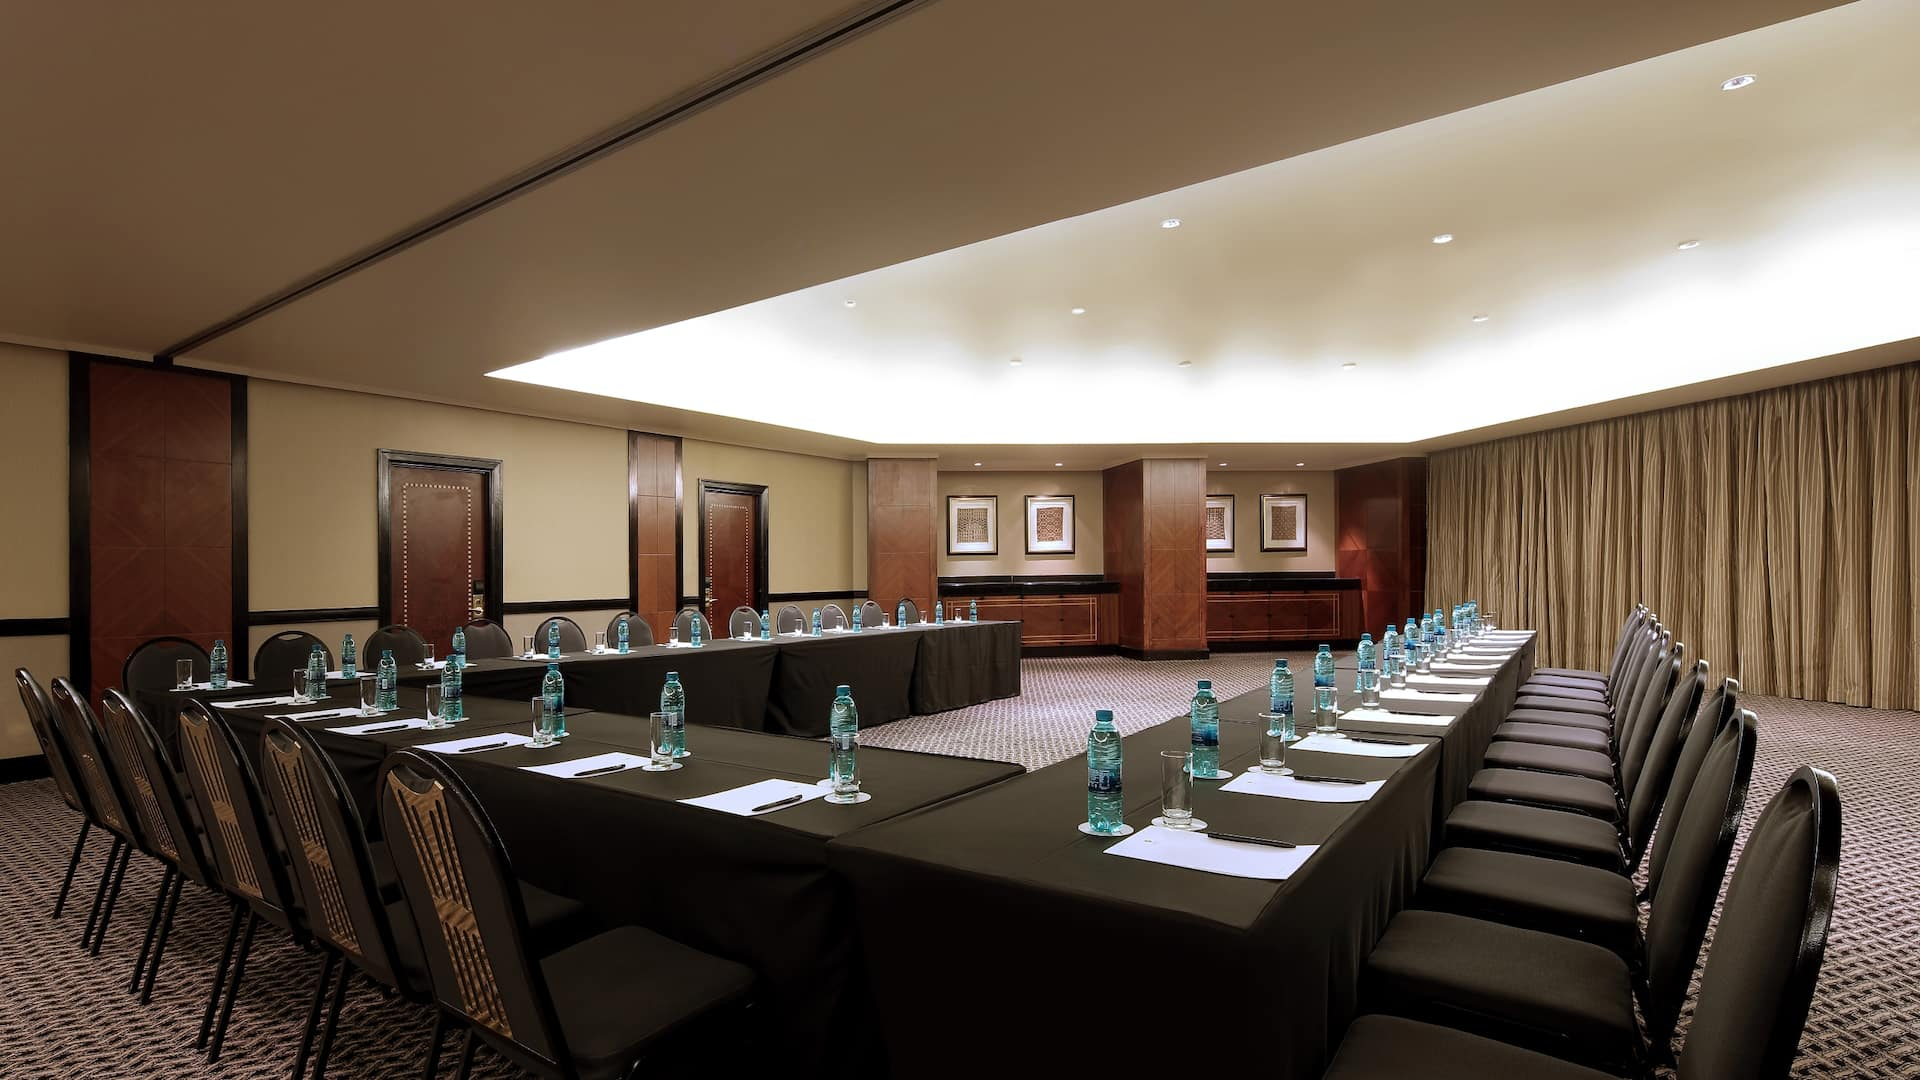 A conference room wih ample space for large meetings